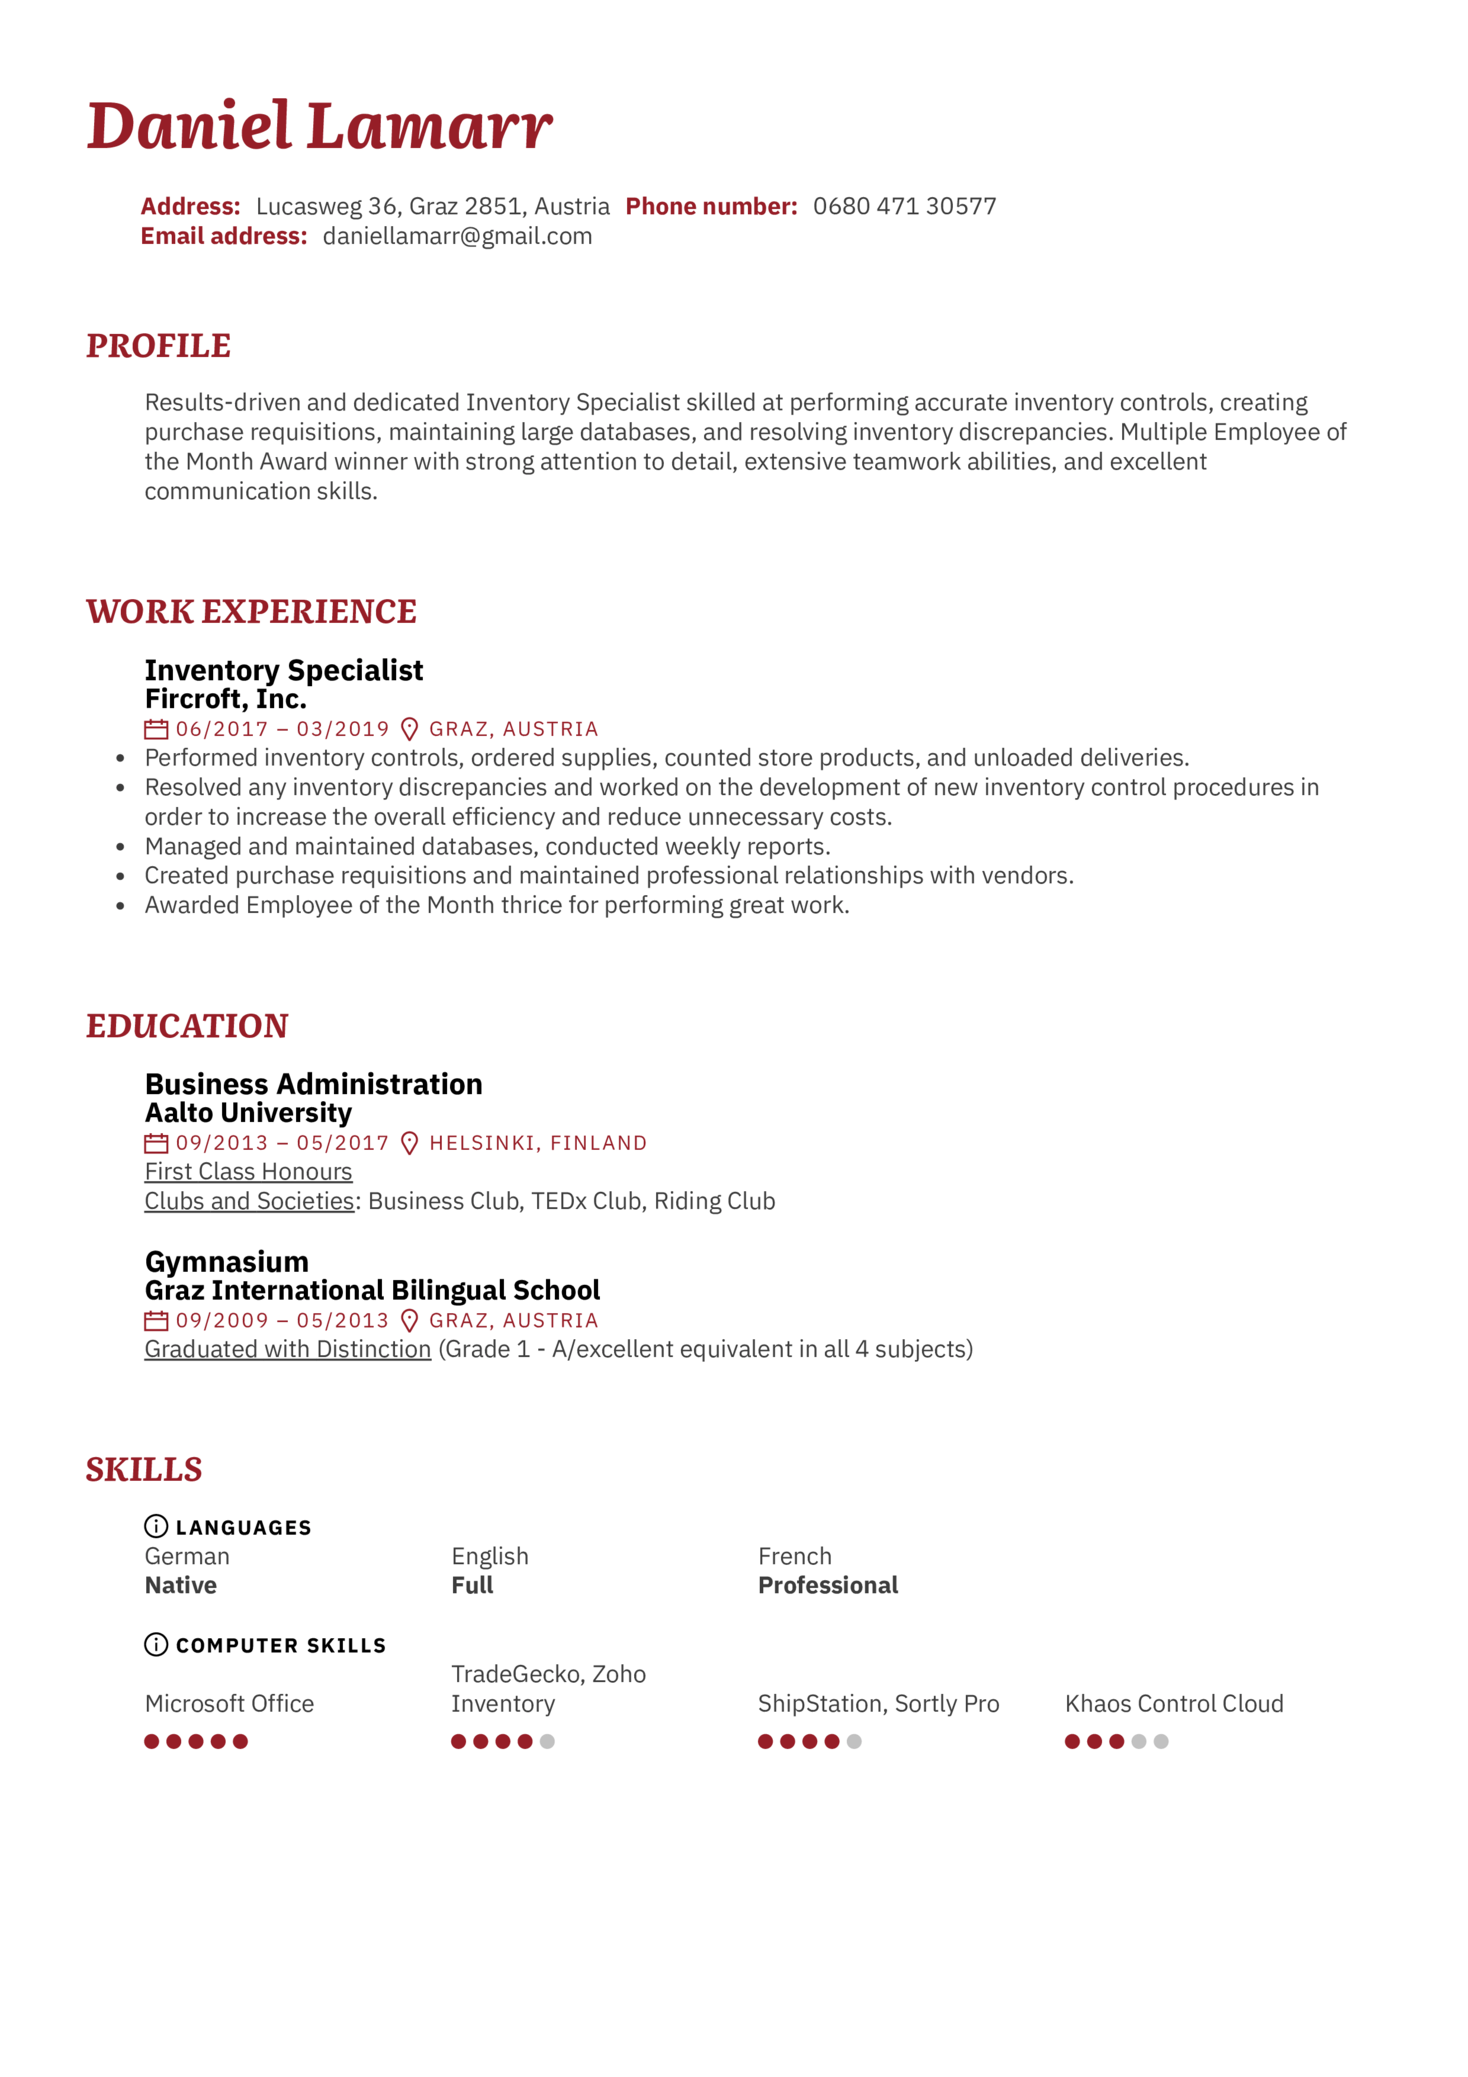 Inventory Specialist Resume Sample (Part 1)